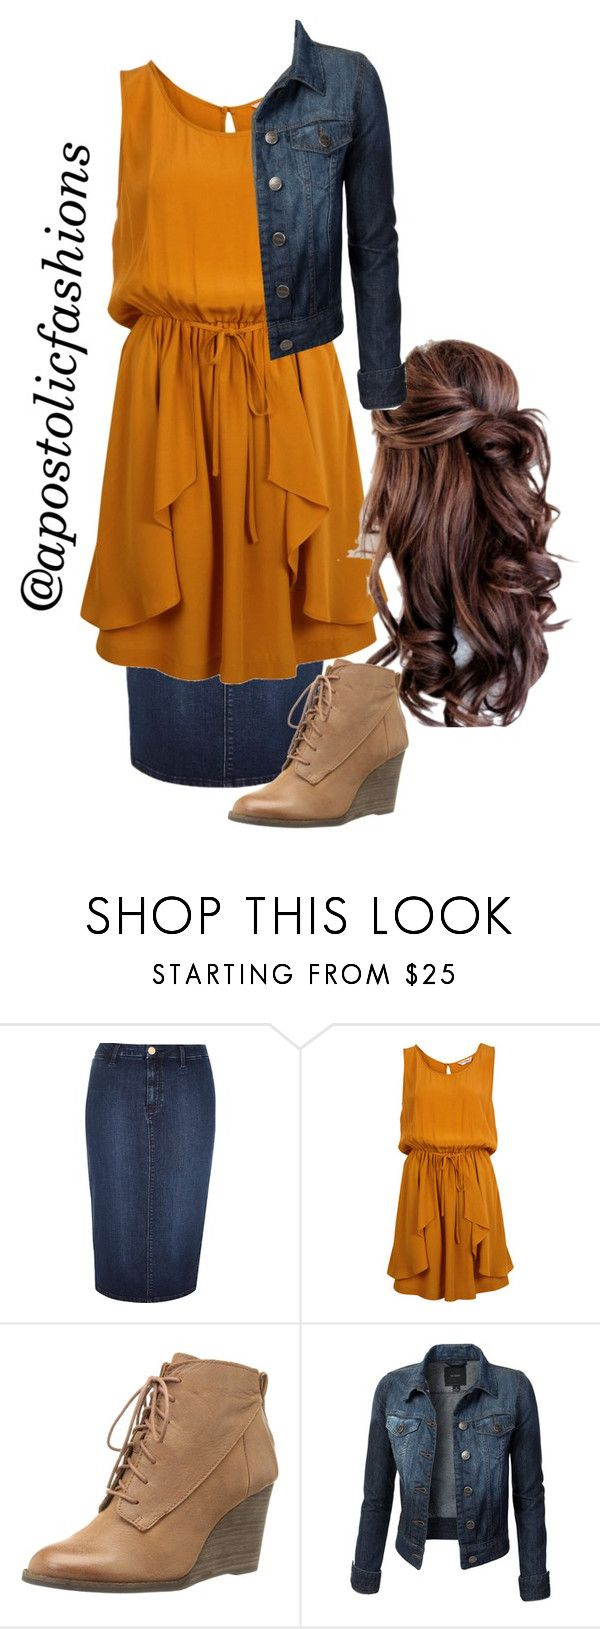 """Apostolic Fashions #1099"" by apostolicfashions on Polyvore featuring River Island, Miss Selfridge, Disney, Lucky Brand, women's clothing, women, female, woman, misses and juniors"